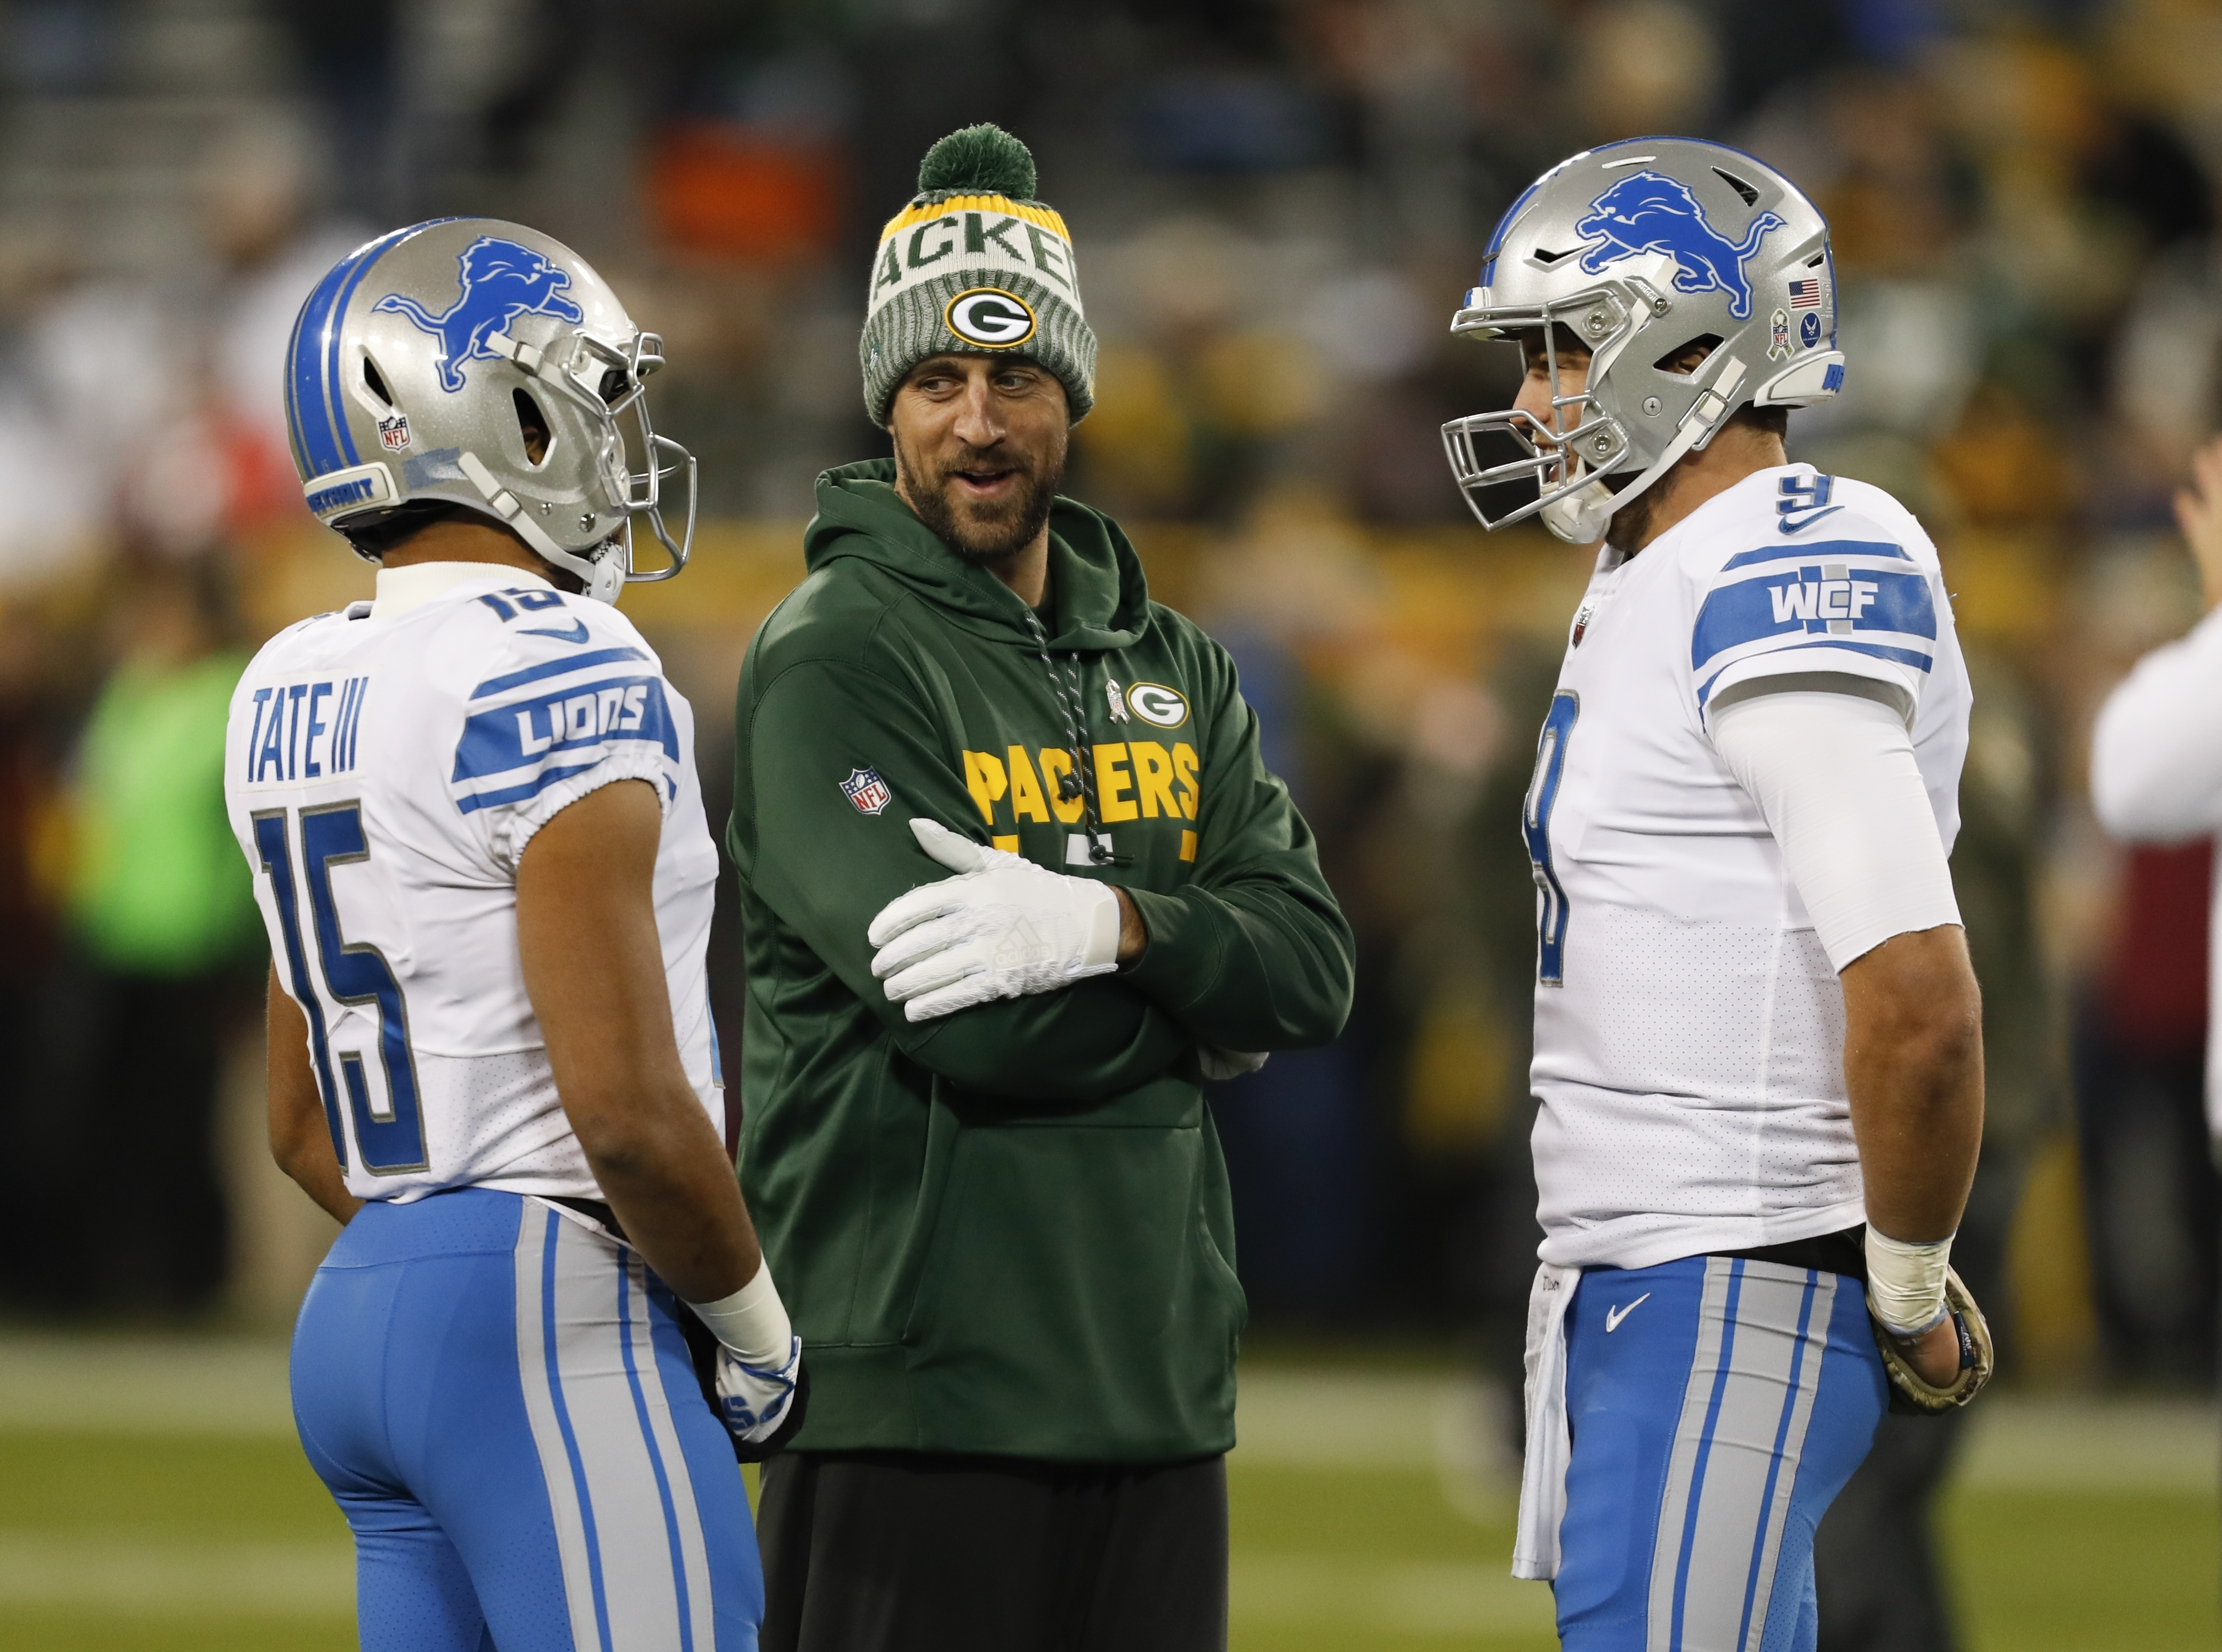 Green Bay Packers' Aaron Rodgers talks to Detroit Lions' Golden Tate and Matthew Stafford before a game Monday, Nov. 6, 2017, in Green Bay. (AP Photo/Matt Ludtke)